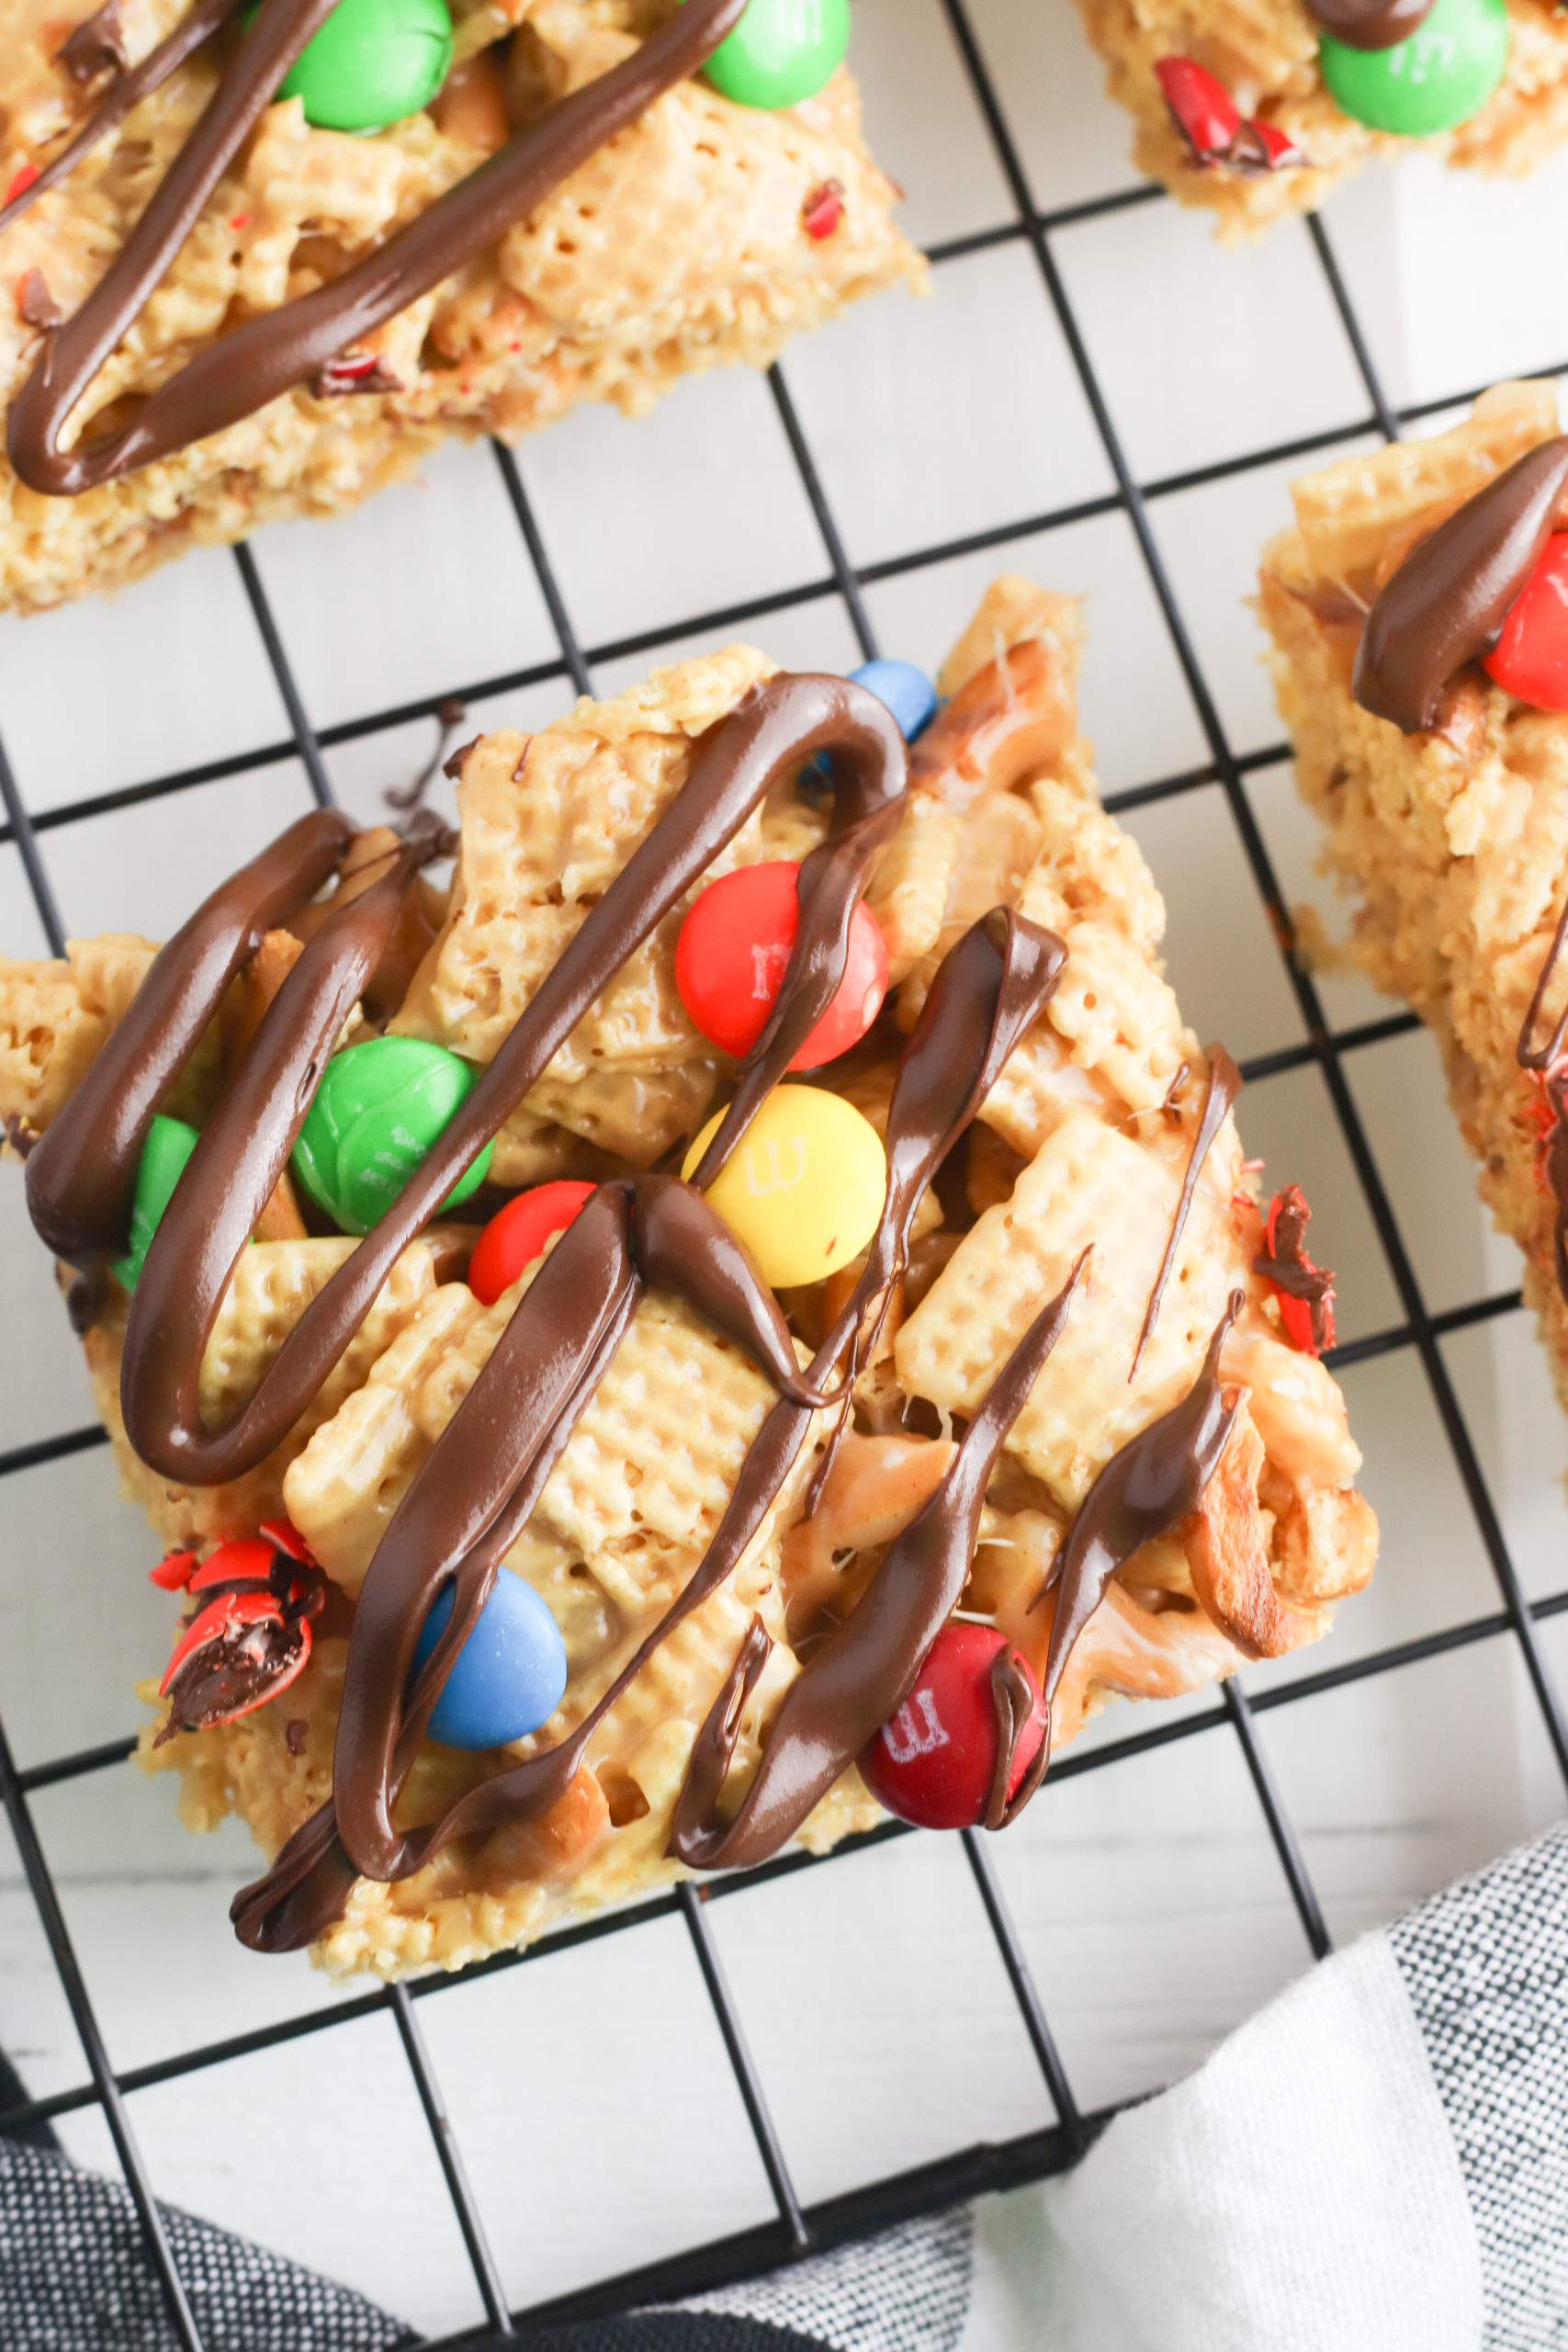 Close up of a peanut butter chex bar with chocolate drizzle.